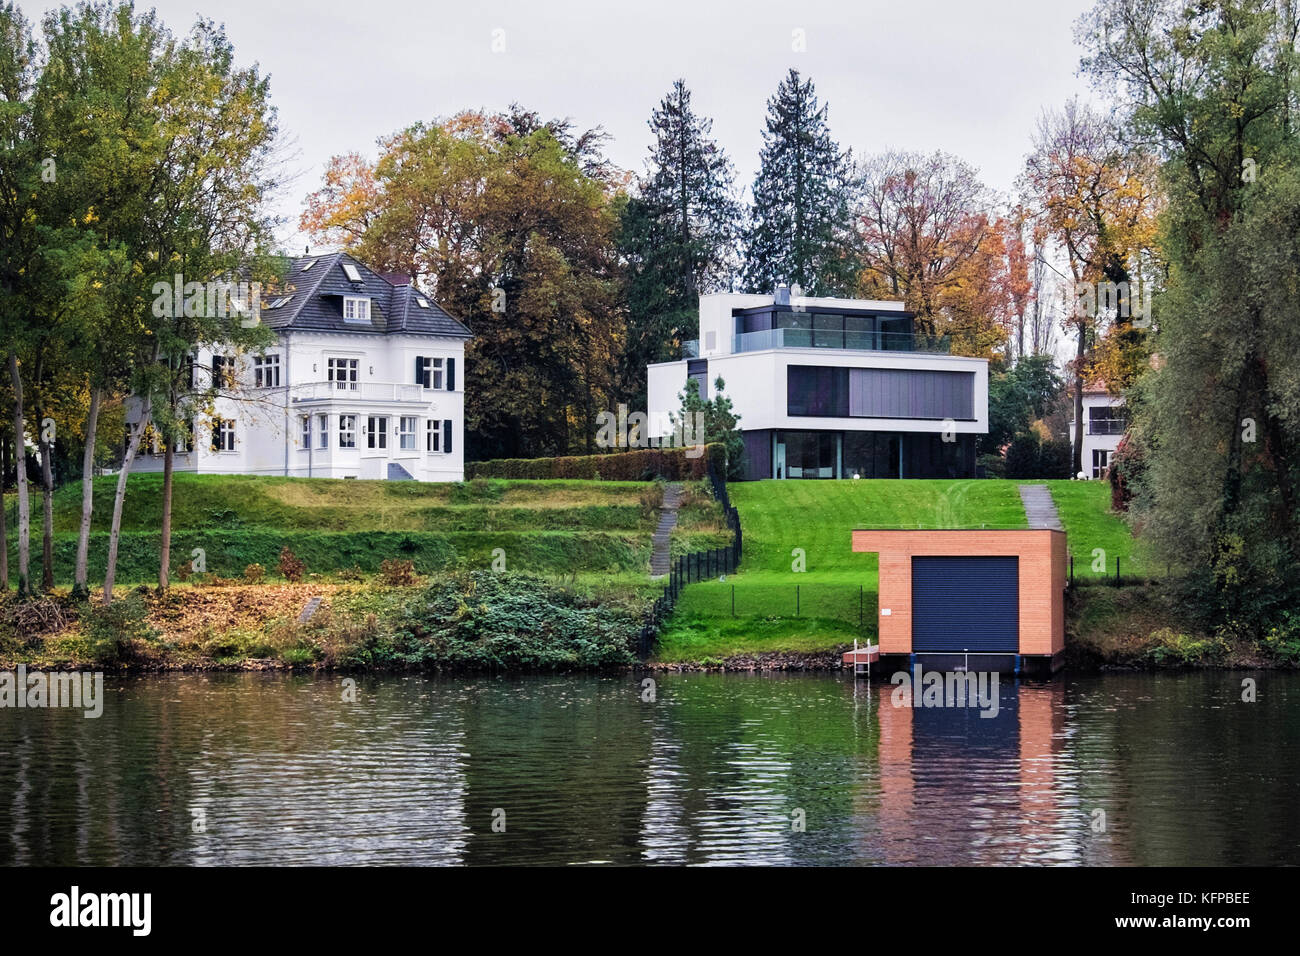 Griebnitzsee stock photos griebnitzsee stock images alamy for Luxury lake house